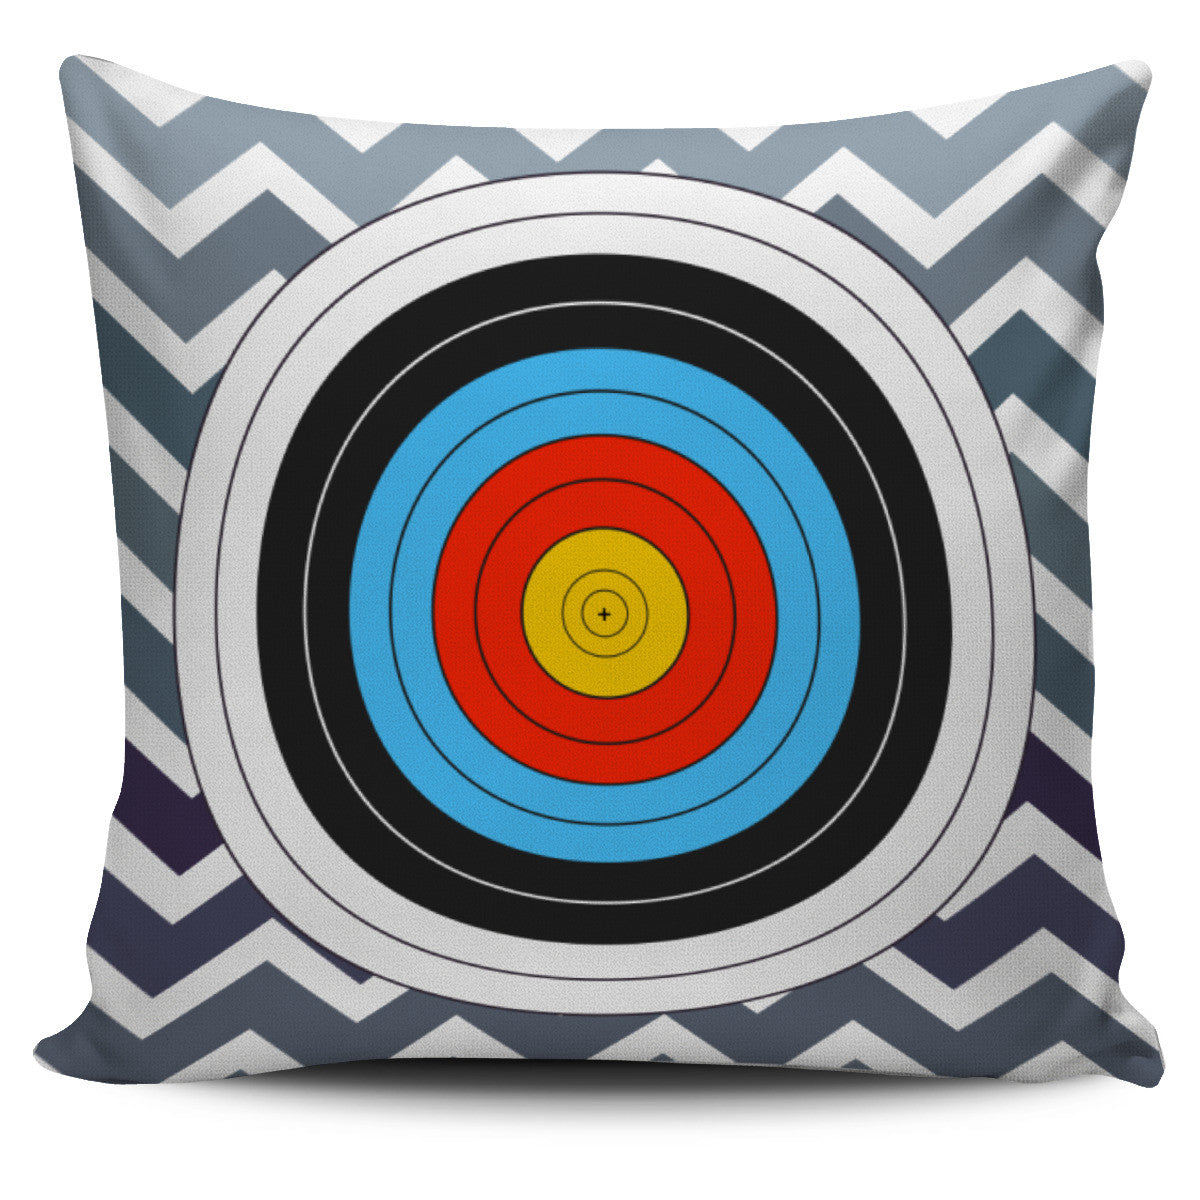 Archery Lovers Pillow Covers